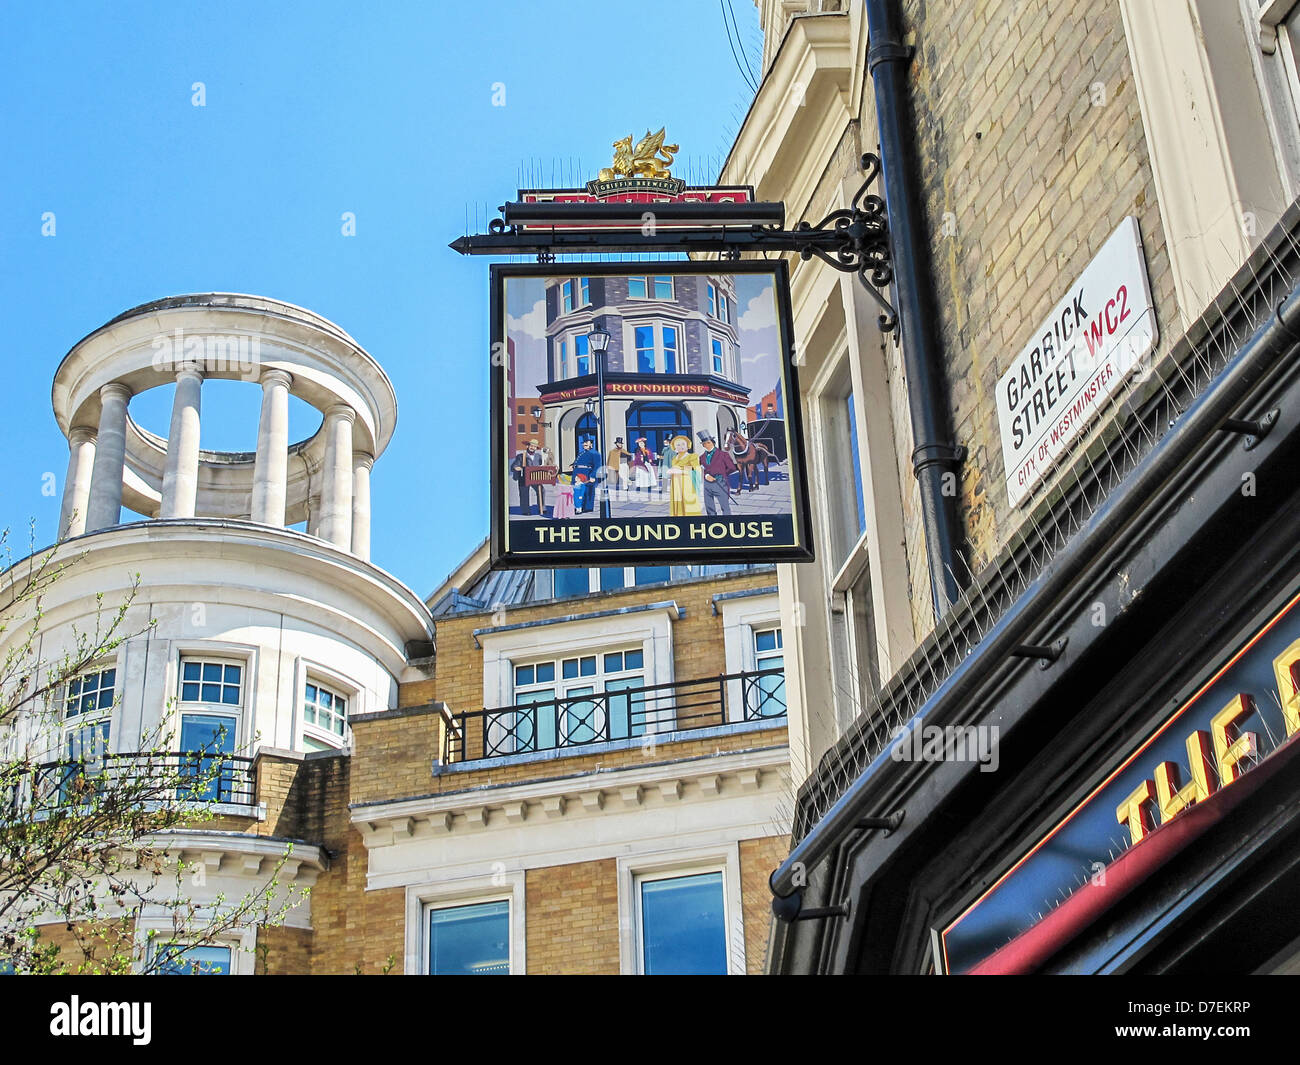 Pleasing The Round House  Pub Sign In Garrick Street Covent Garden  With Remarkable Stock Photo  The Round House  Pub Sign In Garrick Street Covent Garden  London With Amusing Tree House For Garden Also Country Garden Design Ideas In Addition Oeco Garden Rooms Reviews And Jade Garden Boothtown As Well As Burleydam Garden Centre Additionally Garden Furniture Protection From Alamycom With   Remarkable The Round House  Pub Sign In Garrick Street Covent Garden  With Amusing Stock Photo  The Round House  Pub Sign In Garrick Street Covent Garden  London And Pleasing Tree House For Garden Also Country Garden Design Ideas In Addition Oeco Garden Rooms Reviews From Alamycom